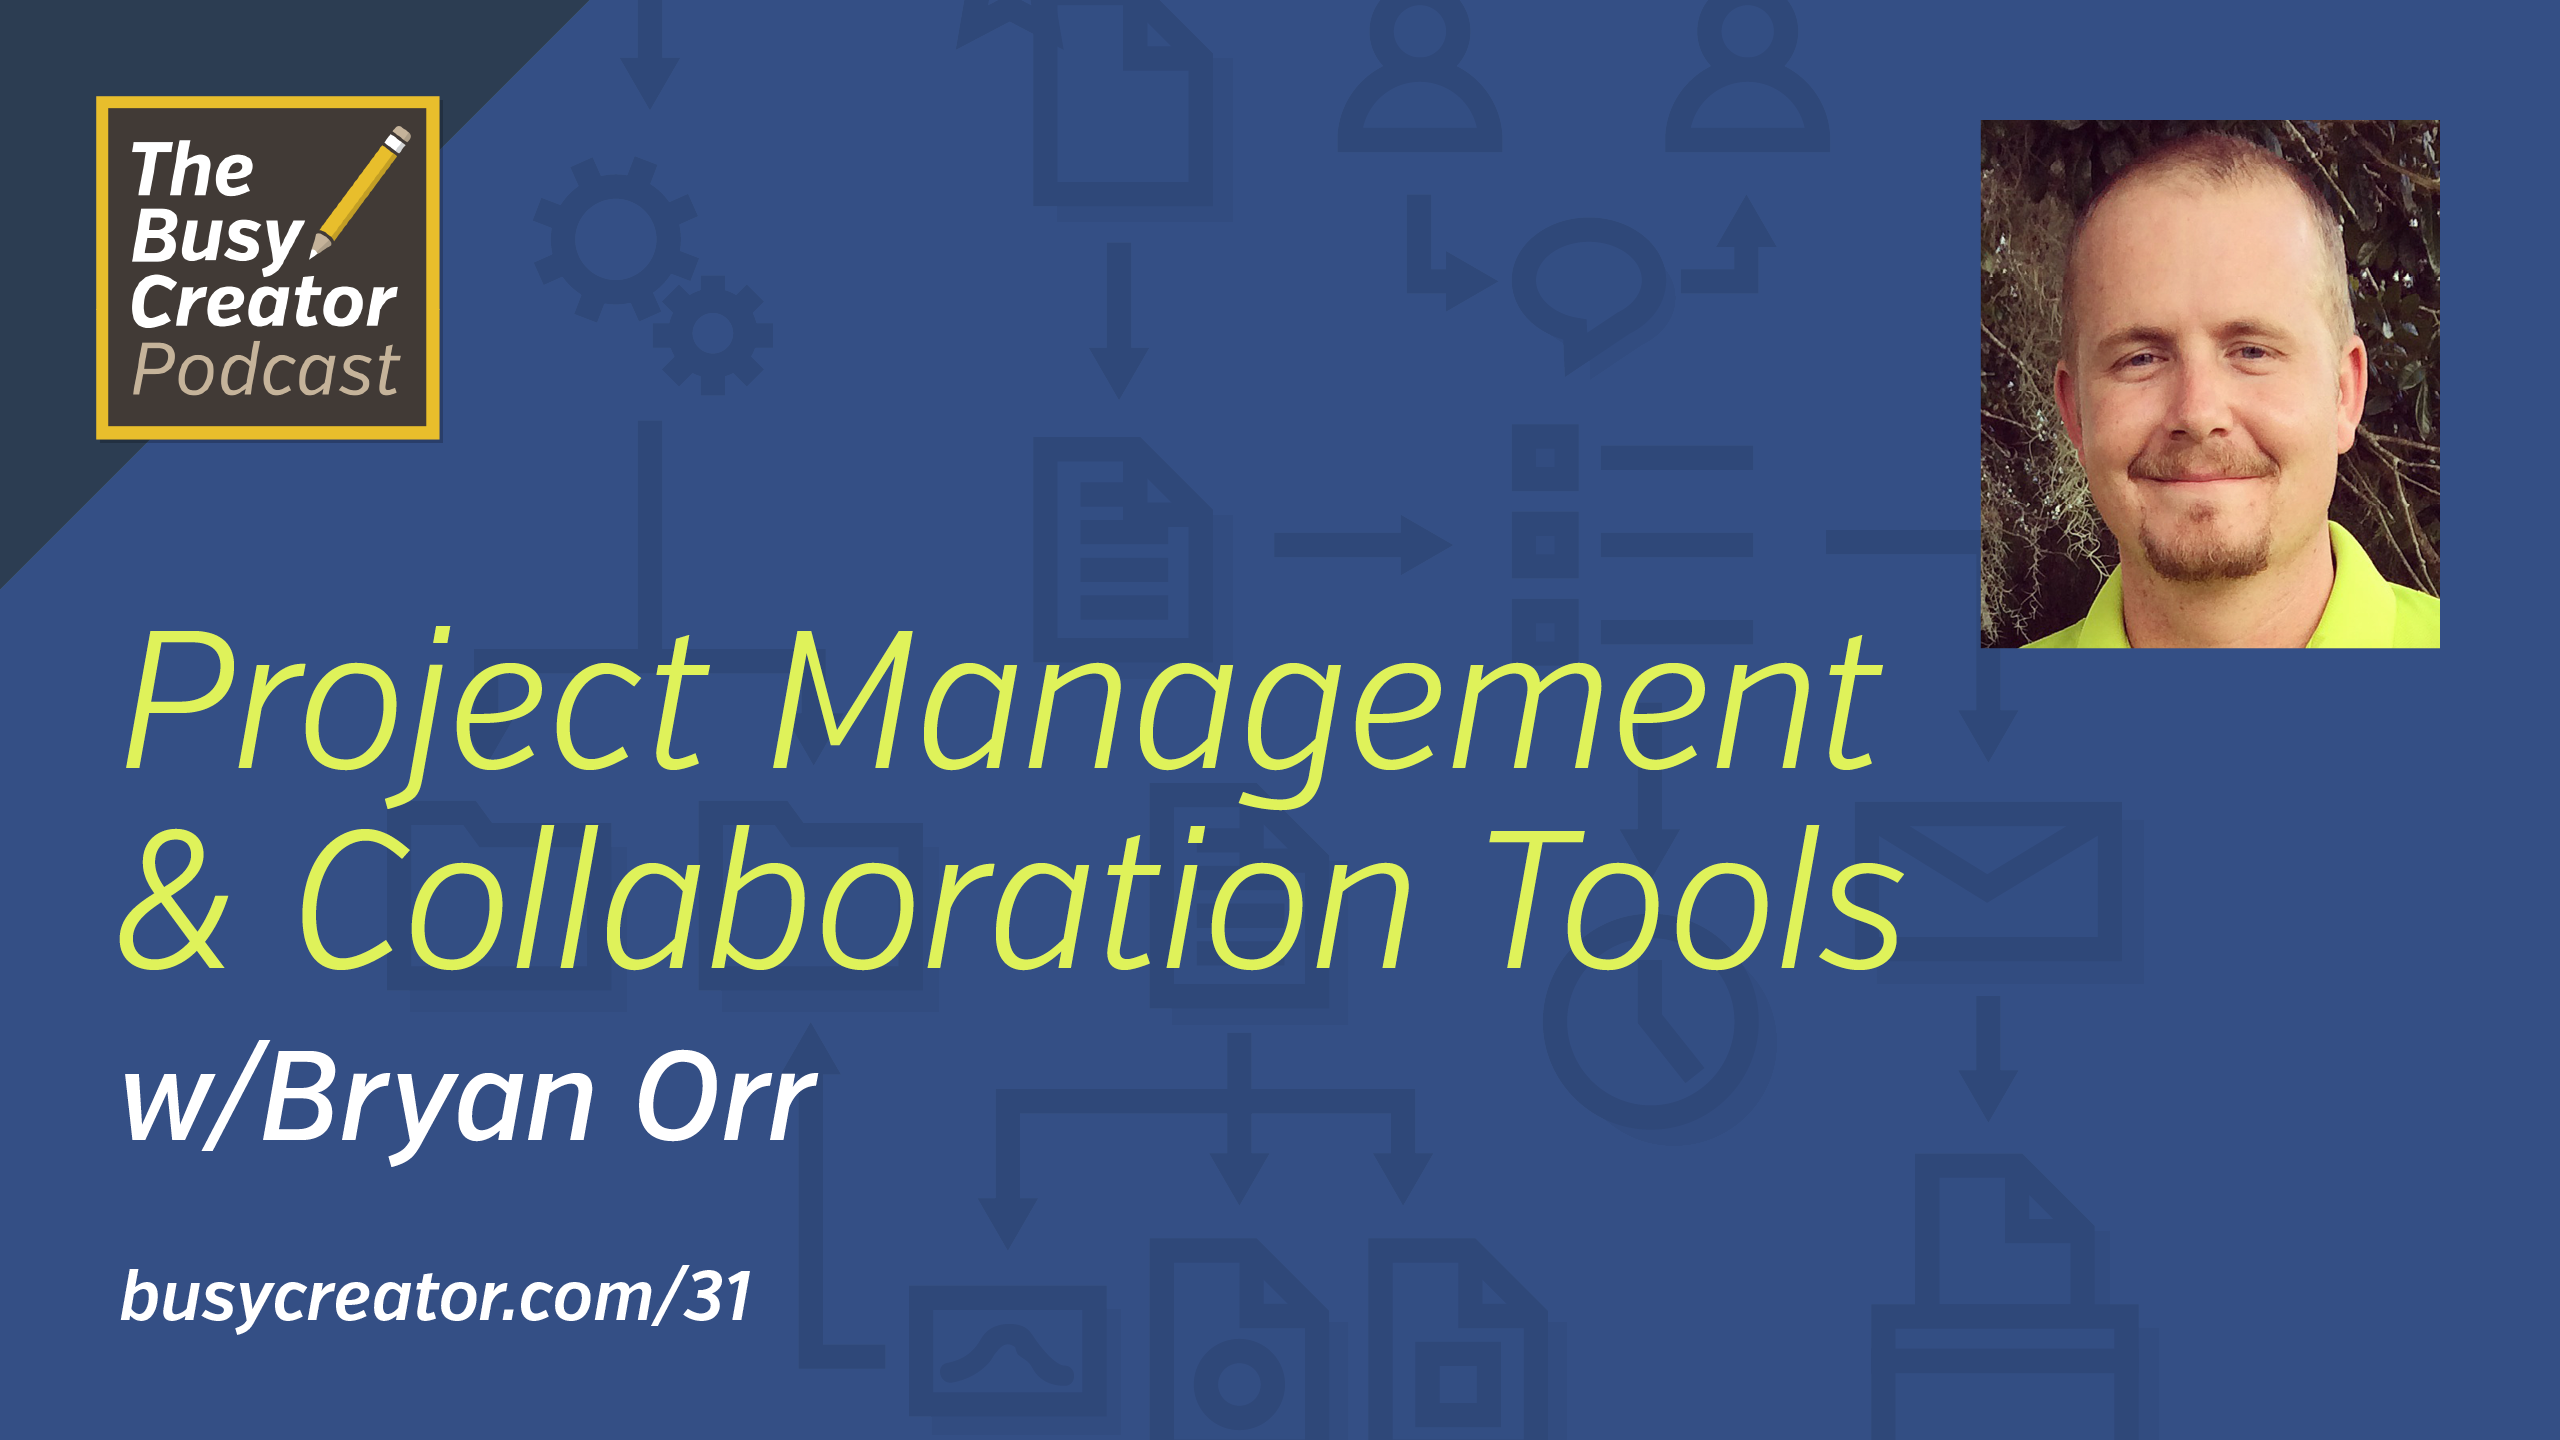 Getting Started with Project Management Tools & Team Collaboration Software, with Bryan Orr